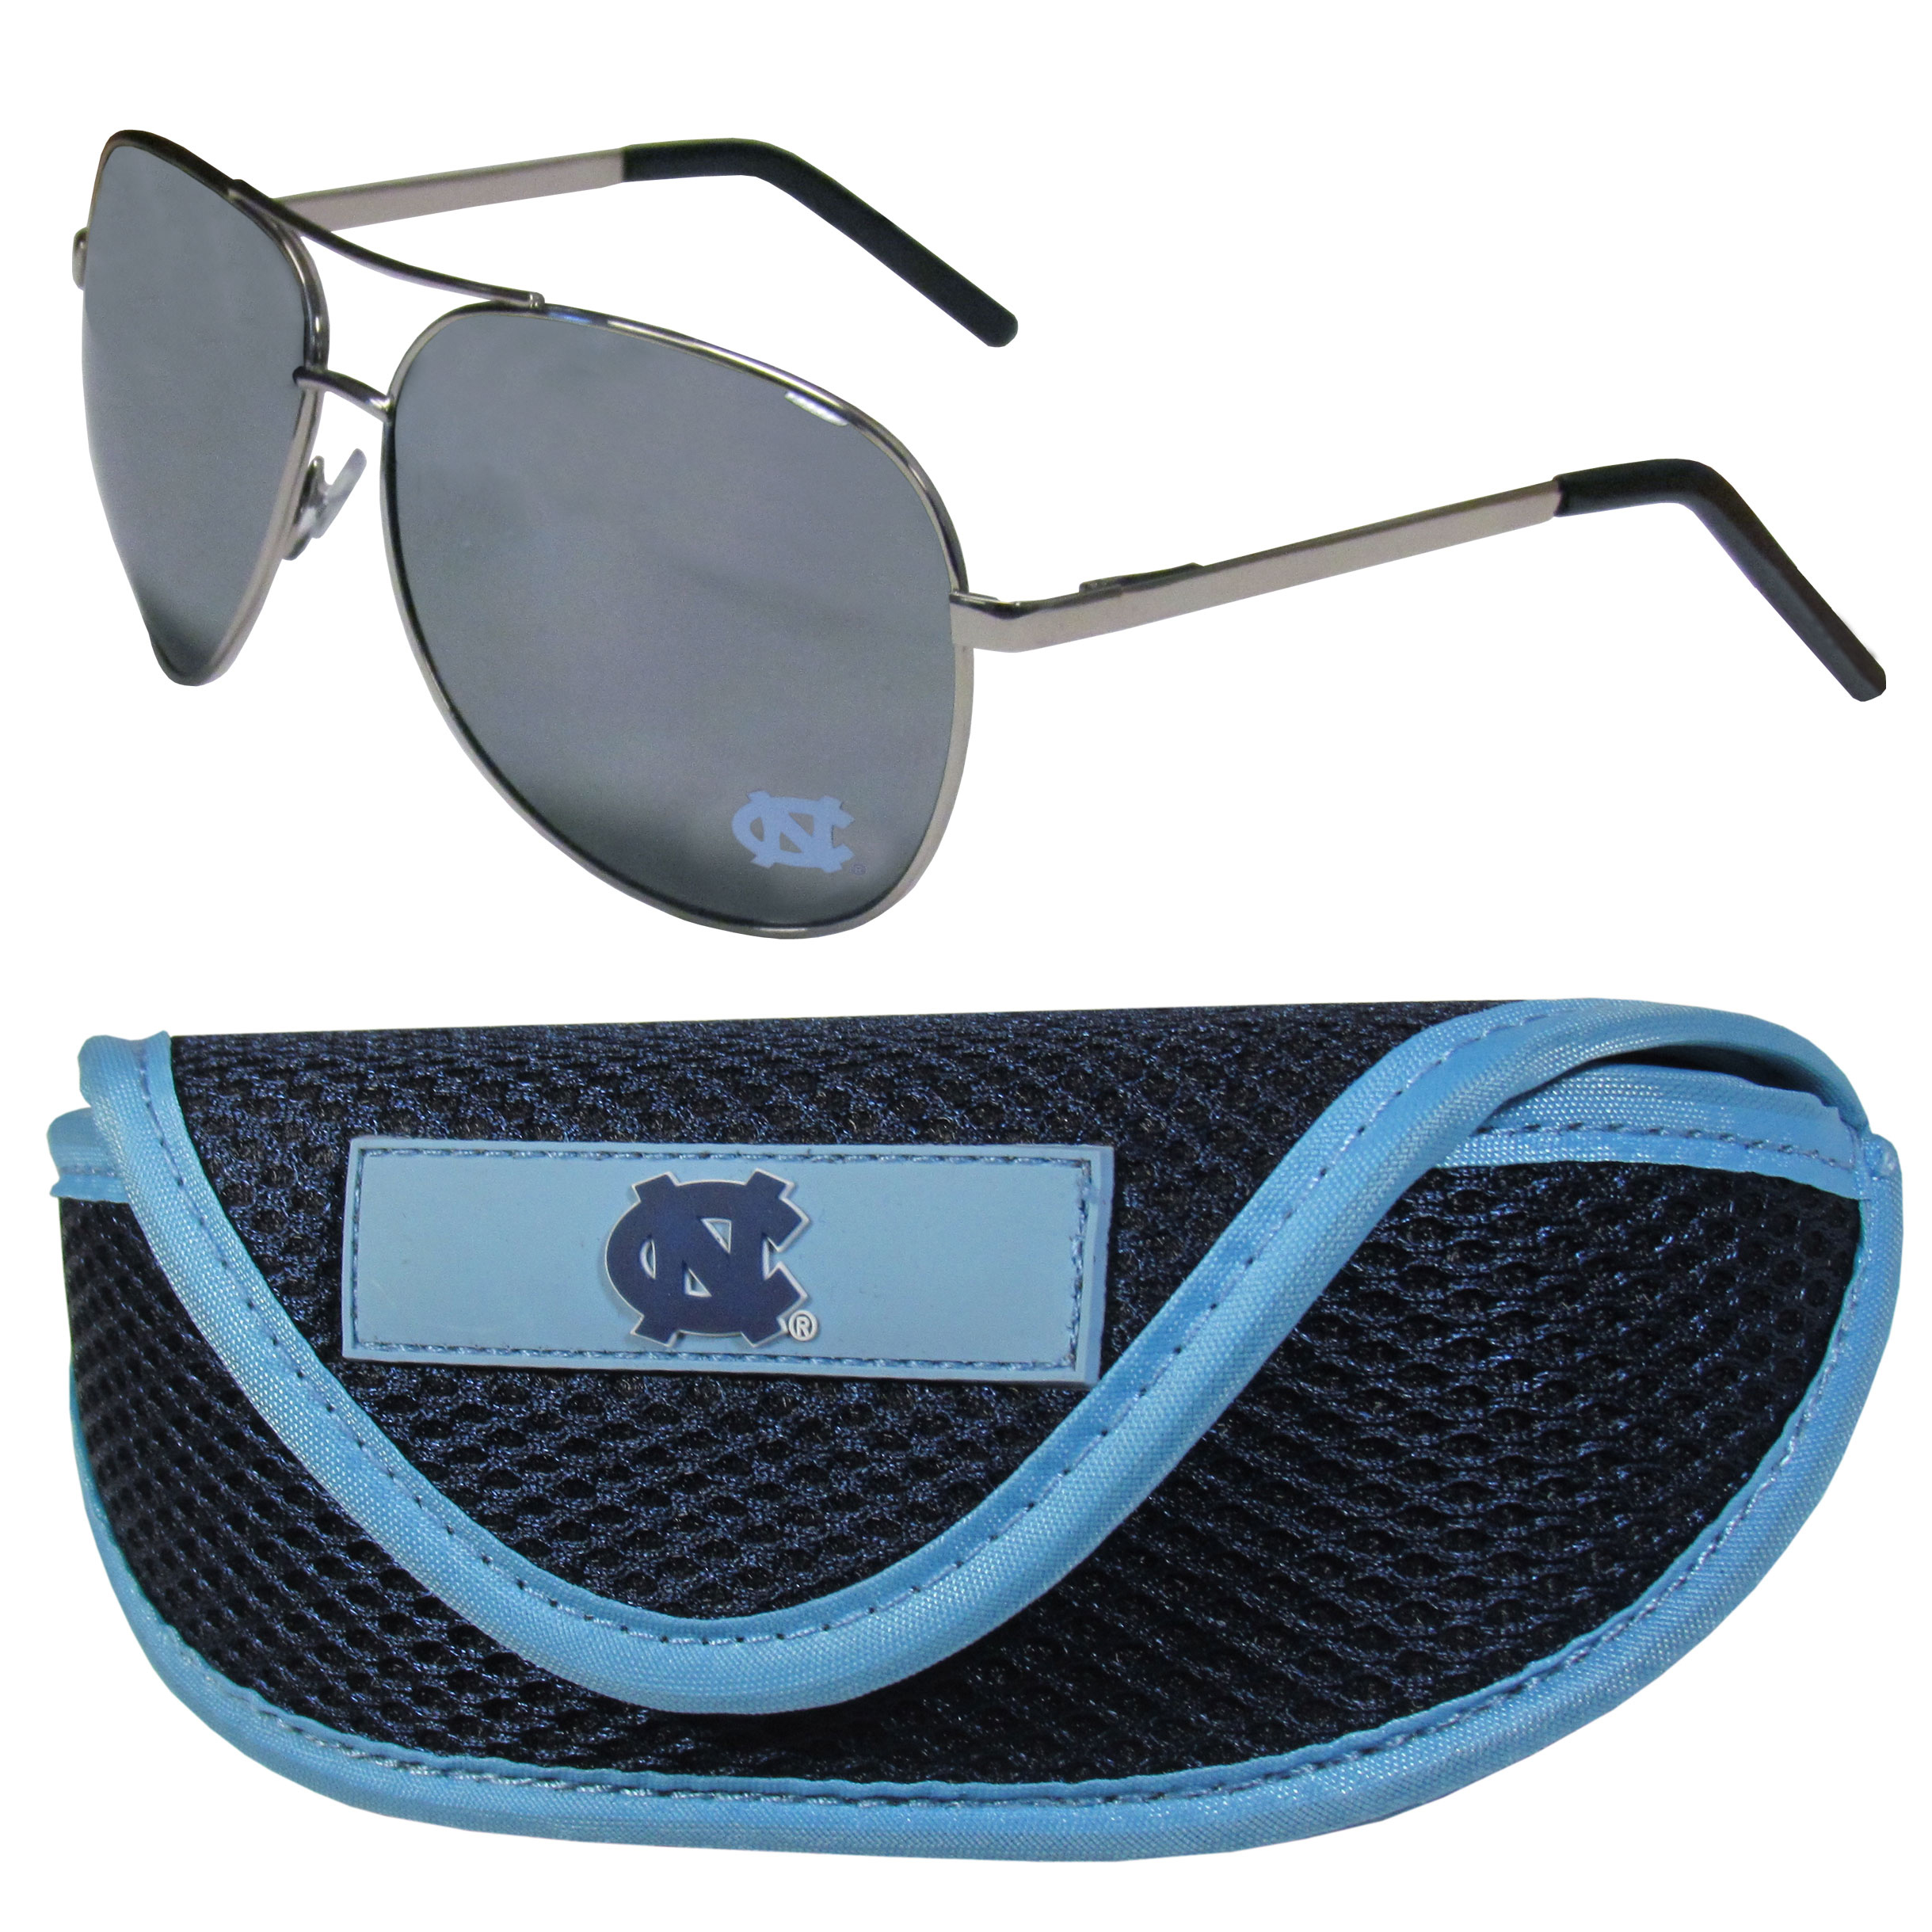 N. Carolina Tar Heels Aviator Sunglasses and Sports Case - Aviator sunglasses are truly an iconic retro fashion statement that never goes out-of-style. Our N. Carolina Tar Heels  aviator sunglasses pair this classic look with your love of the game. The iridium coated lenses reduce glare while driving, boating, golfing and their 100% UVA/UVB rating provides you with the maximum UV protection for all your outdoor activities. A millennial favorite, these affordable designer frames are the perfect eyewear accessory for a sports fan that is looking for high-quality at an affordable price. The durable, flex hinged frames are tough enough for hiking and camping or if you prefer sun bathing by the pool or on the beach these shades will really stand the test of time. The sunglasses come with a sporty case which has a large team logo on the lid that will make even the most die-hard fan proud!